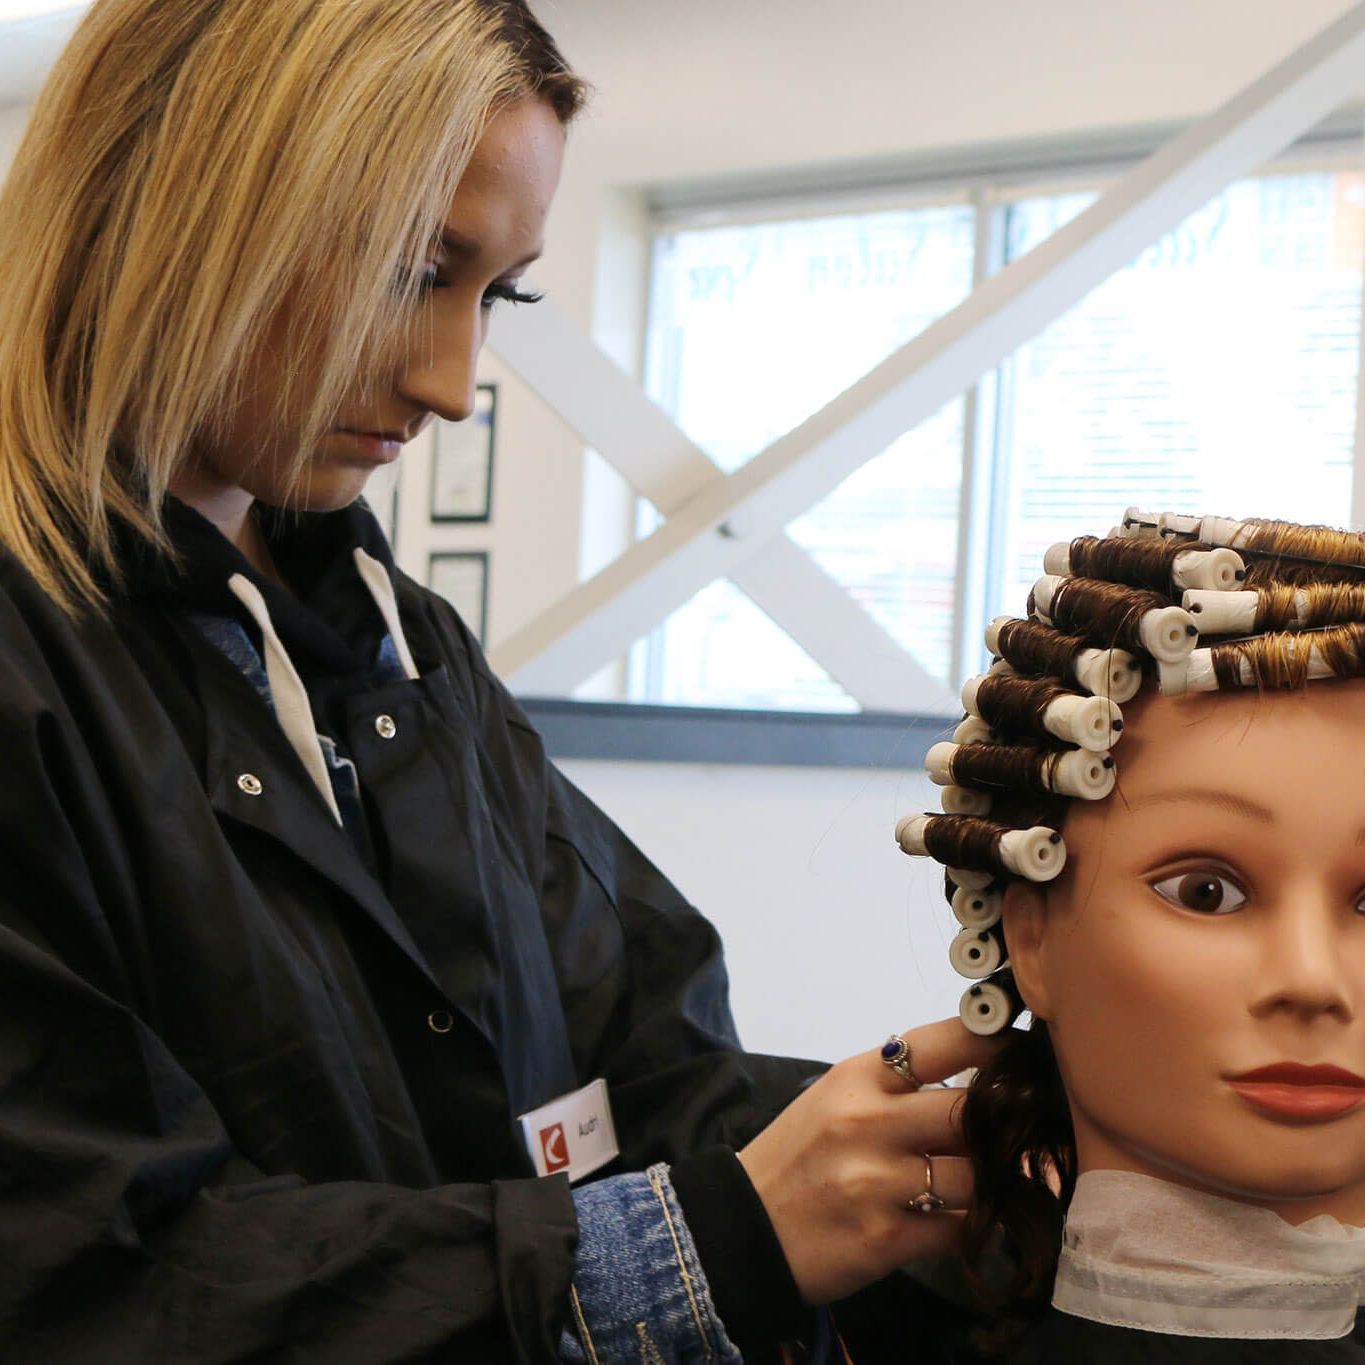 Cosmetology. CTEC Career Technical Education Center through Salem-Keizer Public Schools prepares students for high-skill, high-wage, and high-demand careers, while developing the professional skills, technical knowledge, academic foundation and real-world experience to assure their success upon graduation.